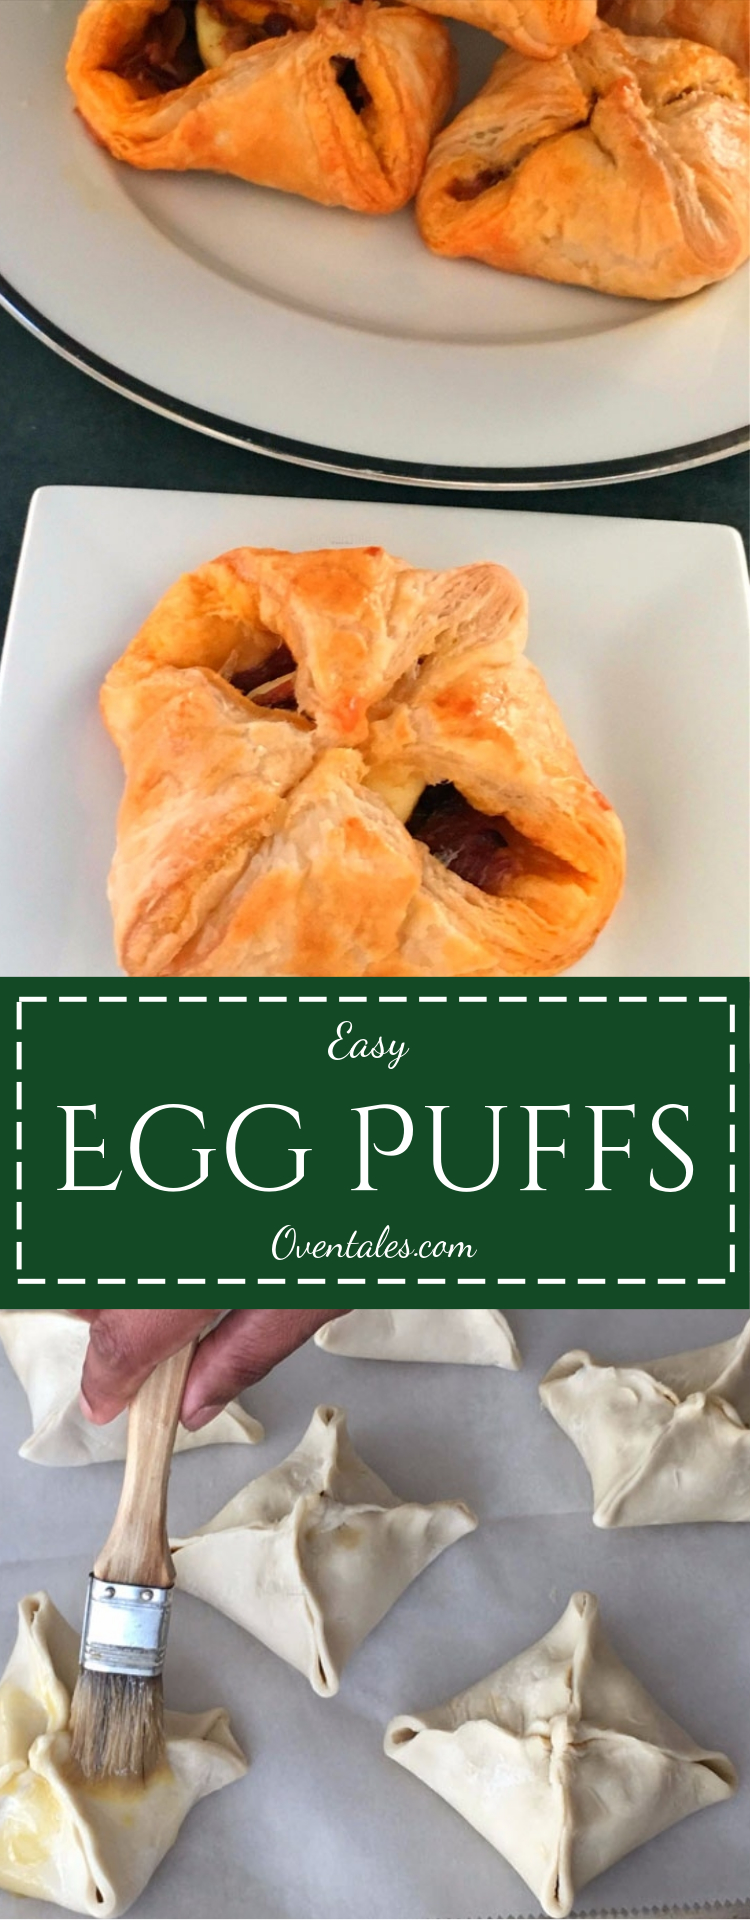 Easy Egg Puffs